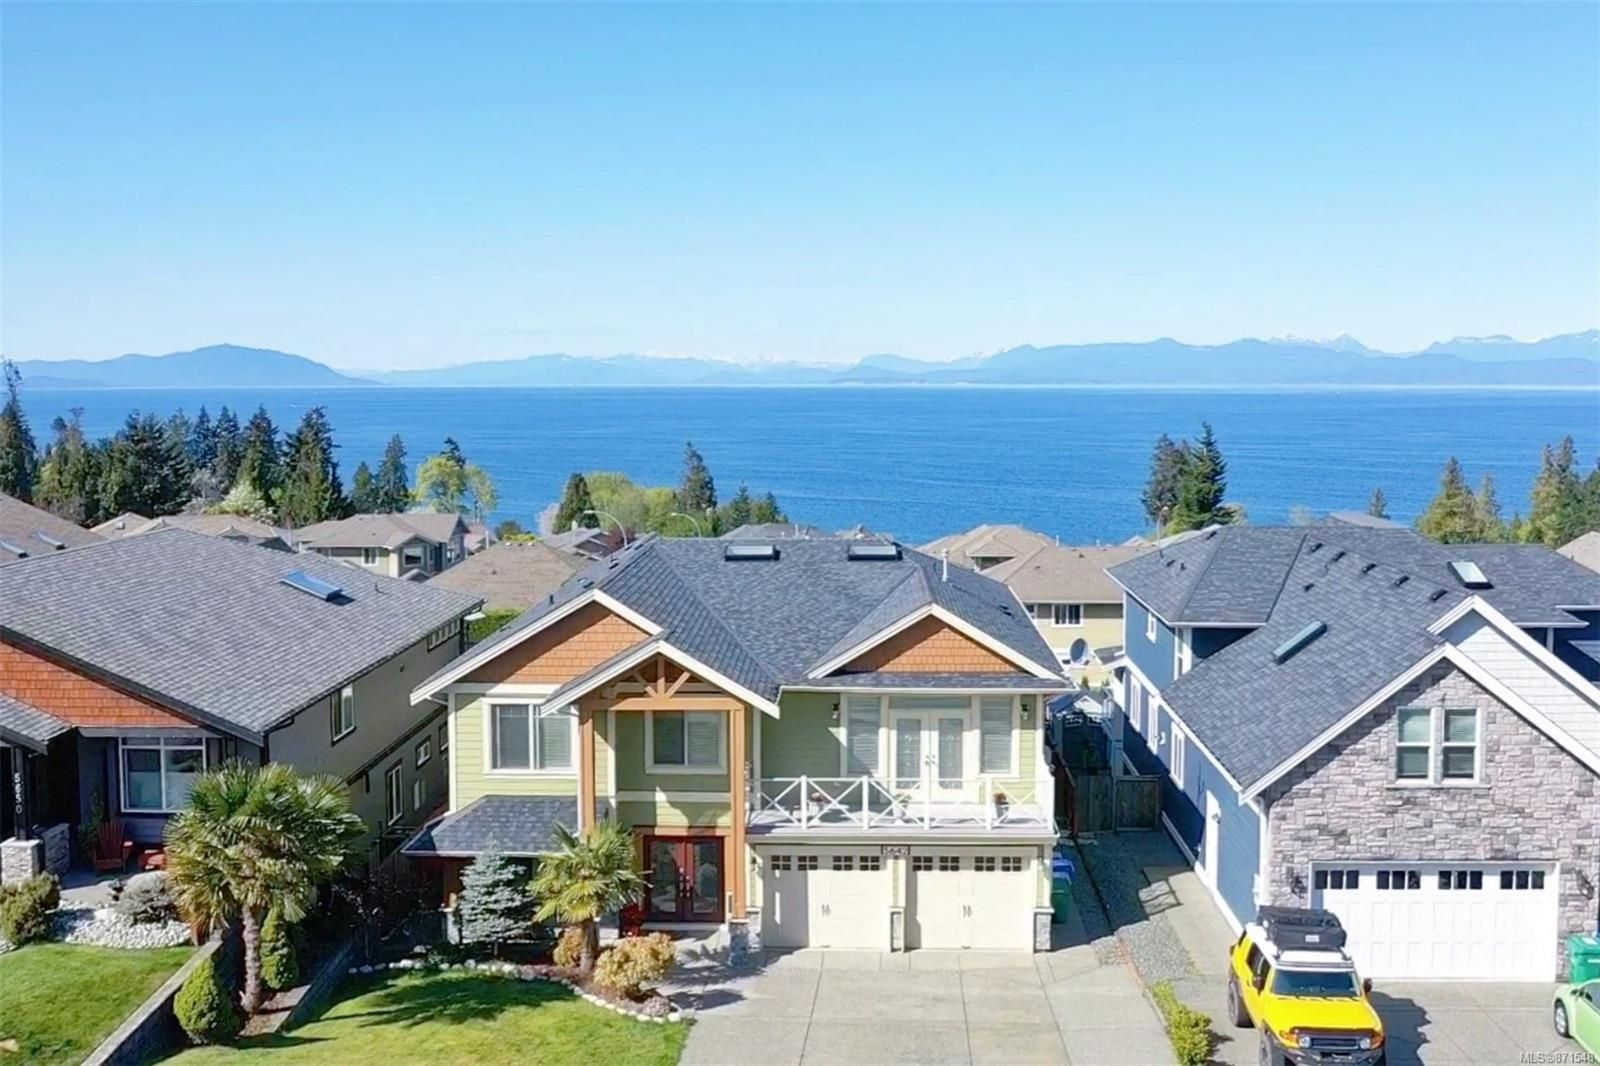 Main Photo: 5642 Oceanview Terr in : Na North Nanaimo House for sale (Nanaimo)  : MLS®# 871548